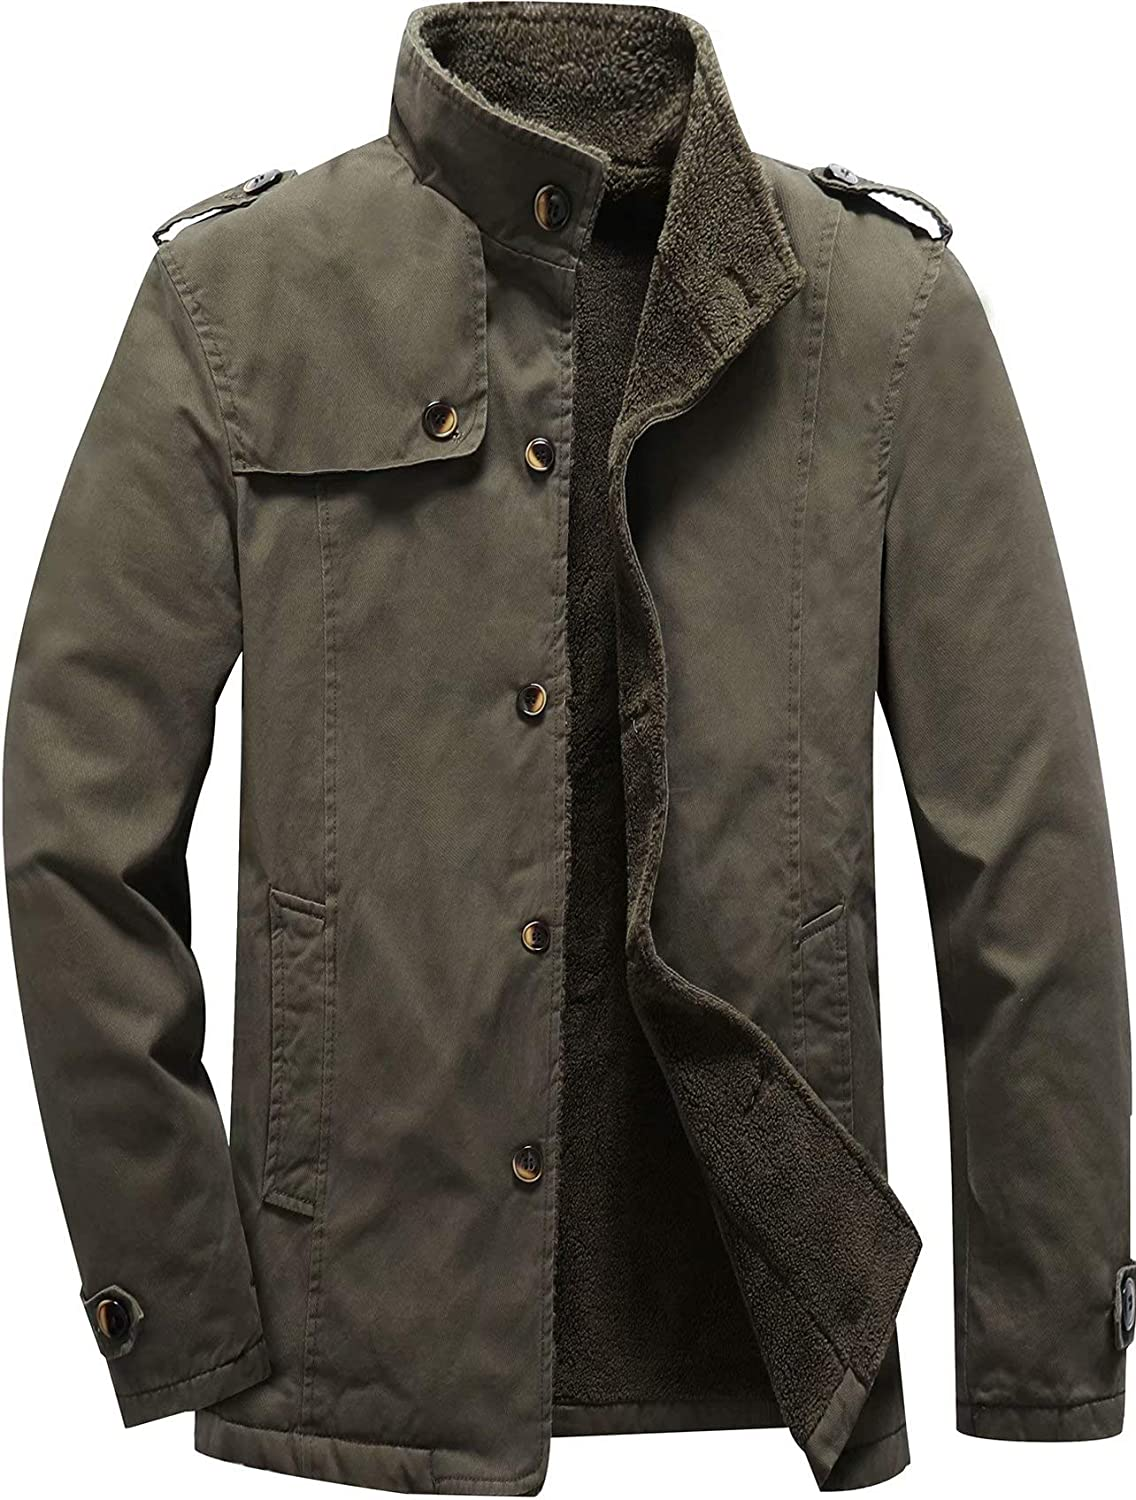 Vcansion Men's Winter Cotton Fleece Lined Jacket Coat Single Breasted Outerwear: Clothing